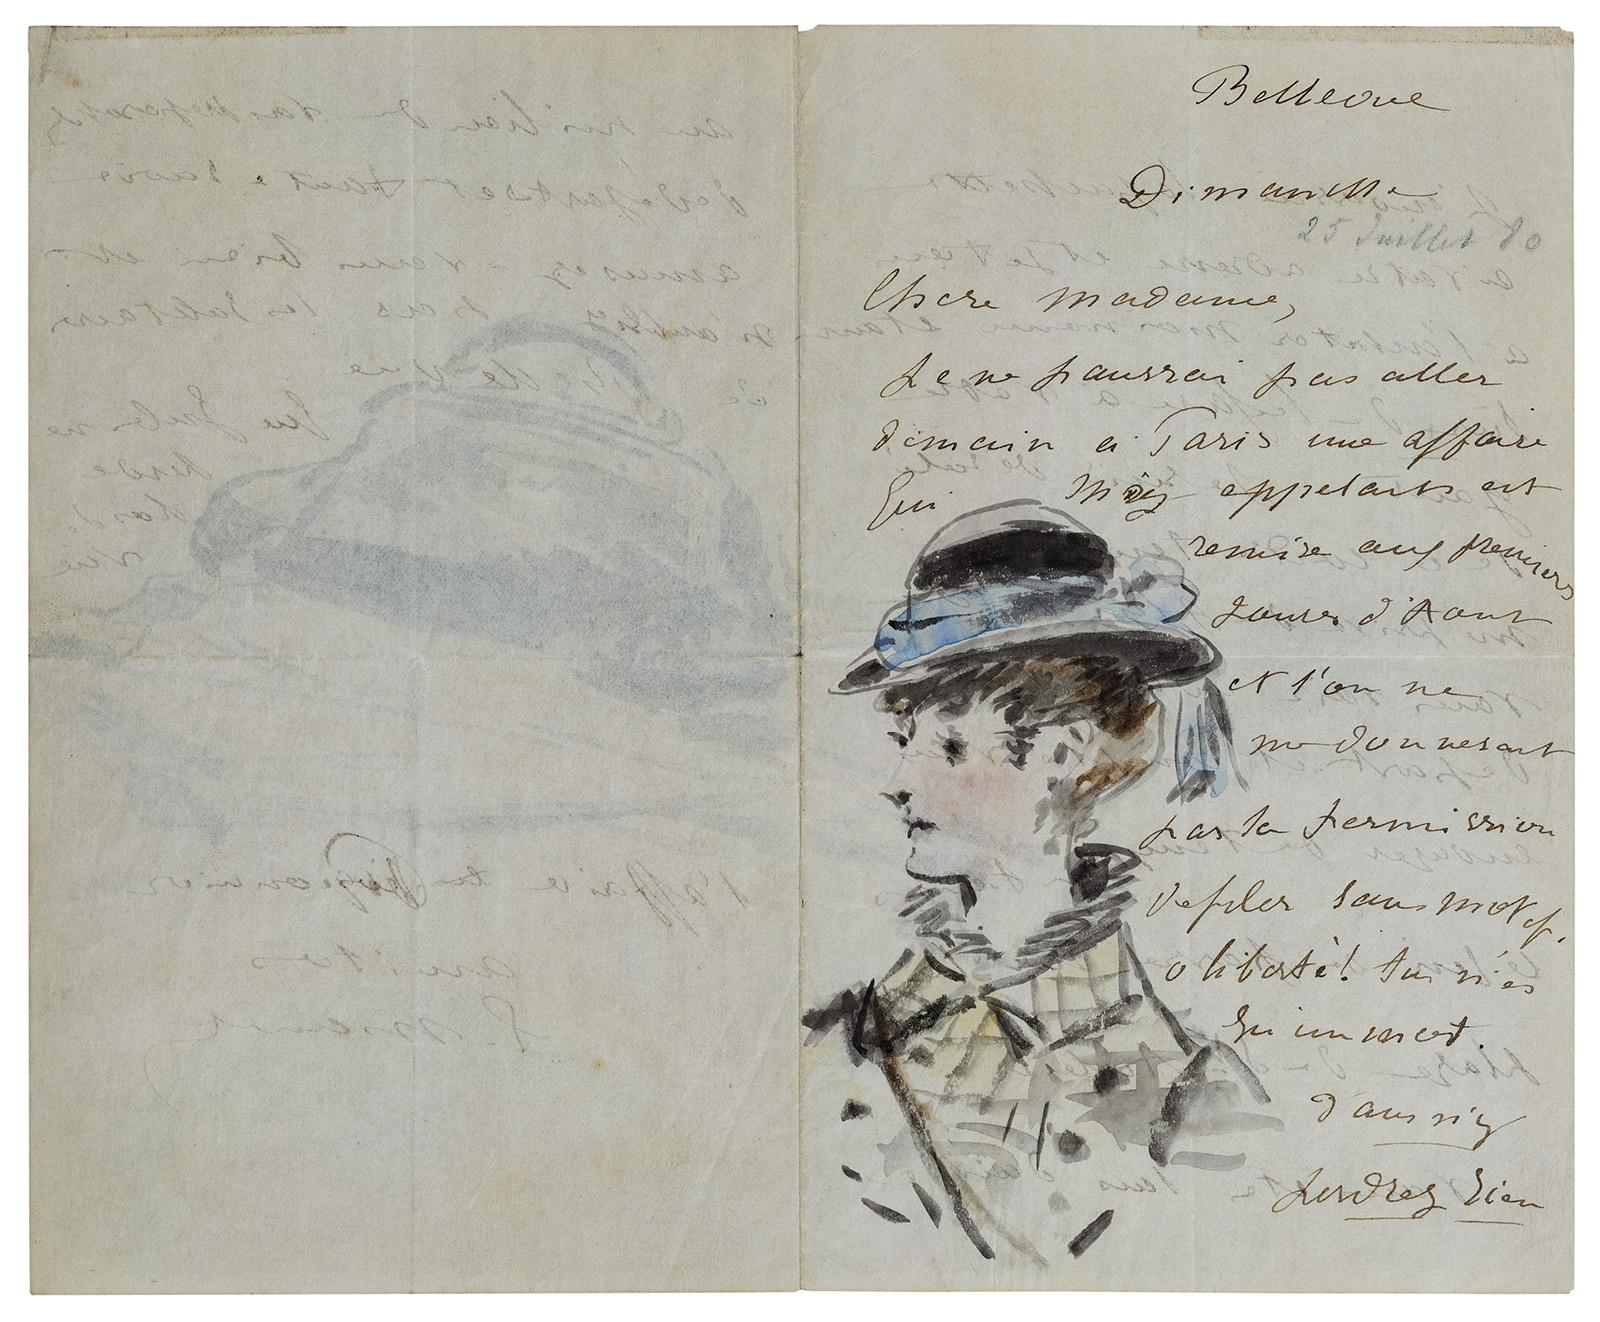 Two sides of an opened journal. Left has faded hand-written text with a sketch of a large satchel. Right has darker handwritten text in French, with a sketch of the bust of a woman wearing a high-necked jacket and a black hat with a blue ribbon.